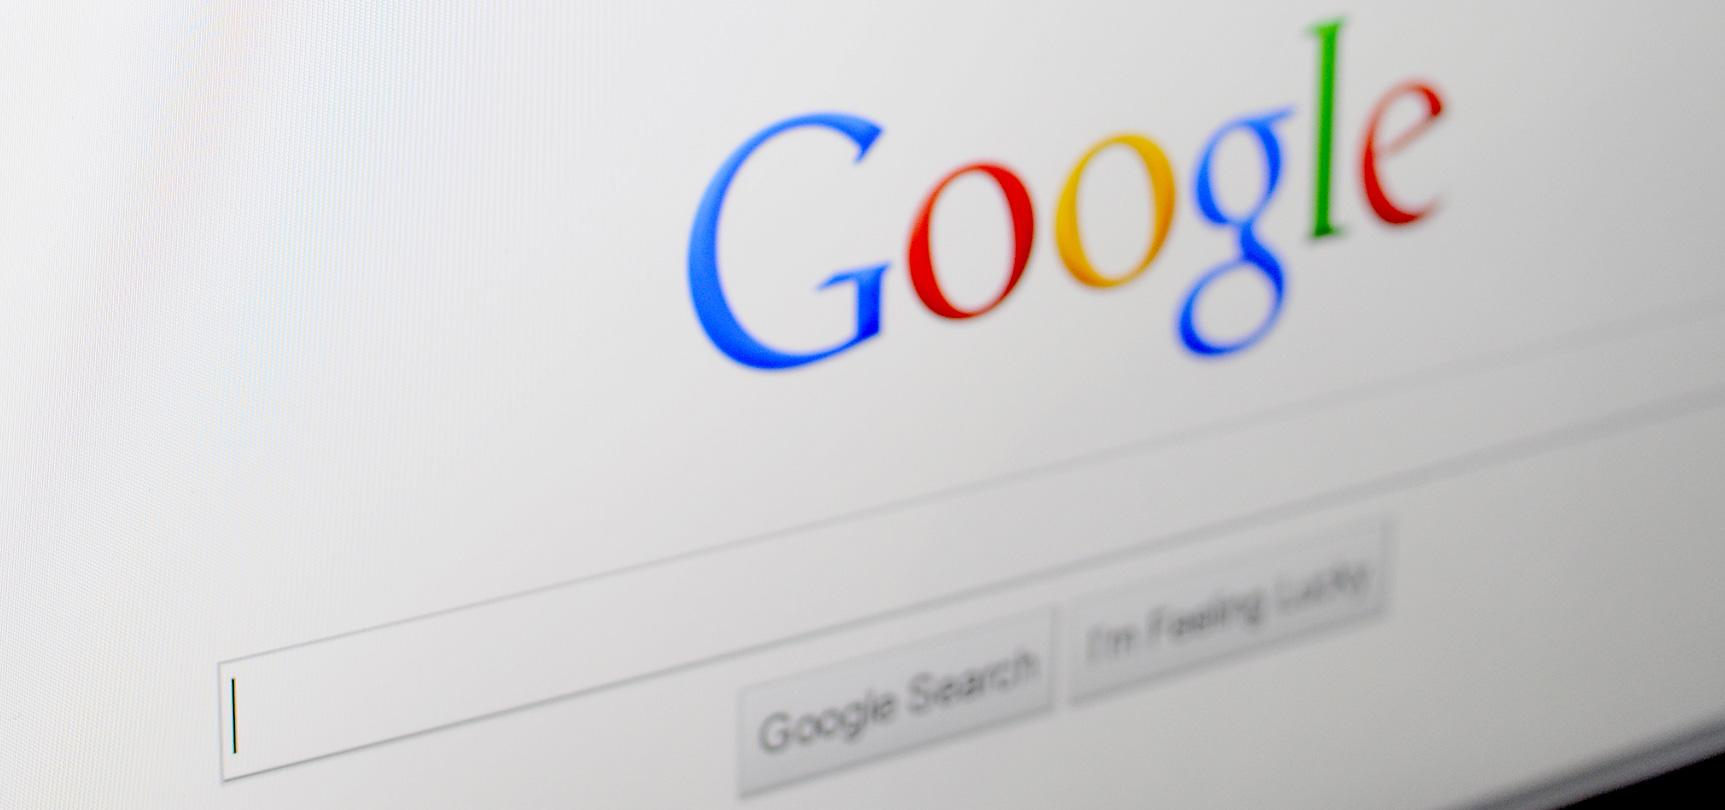 The Top 10 Google Searches of 2014